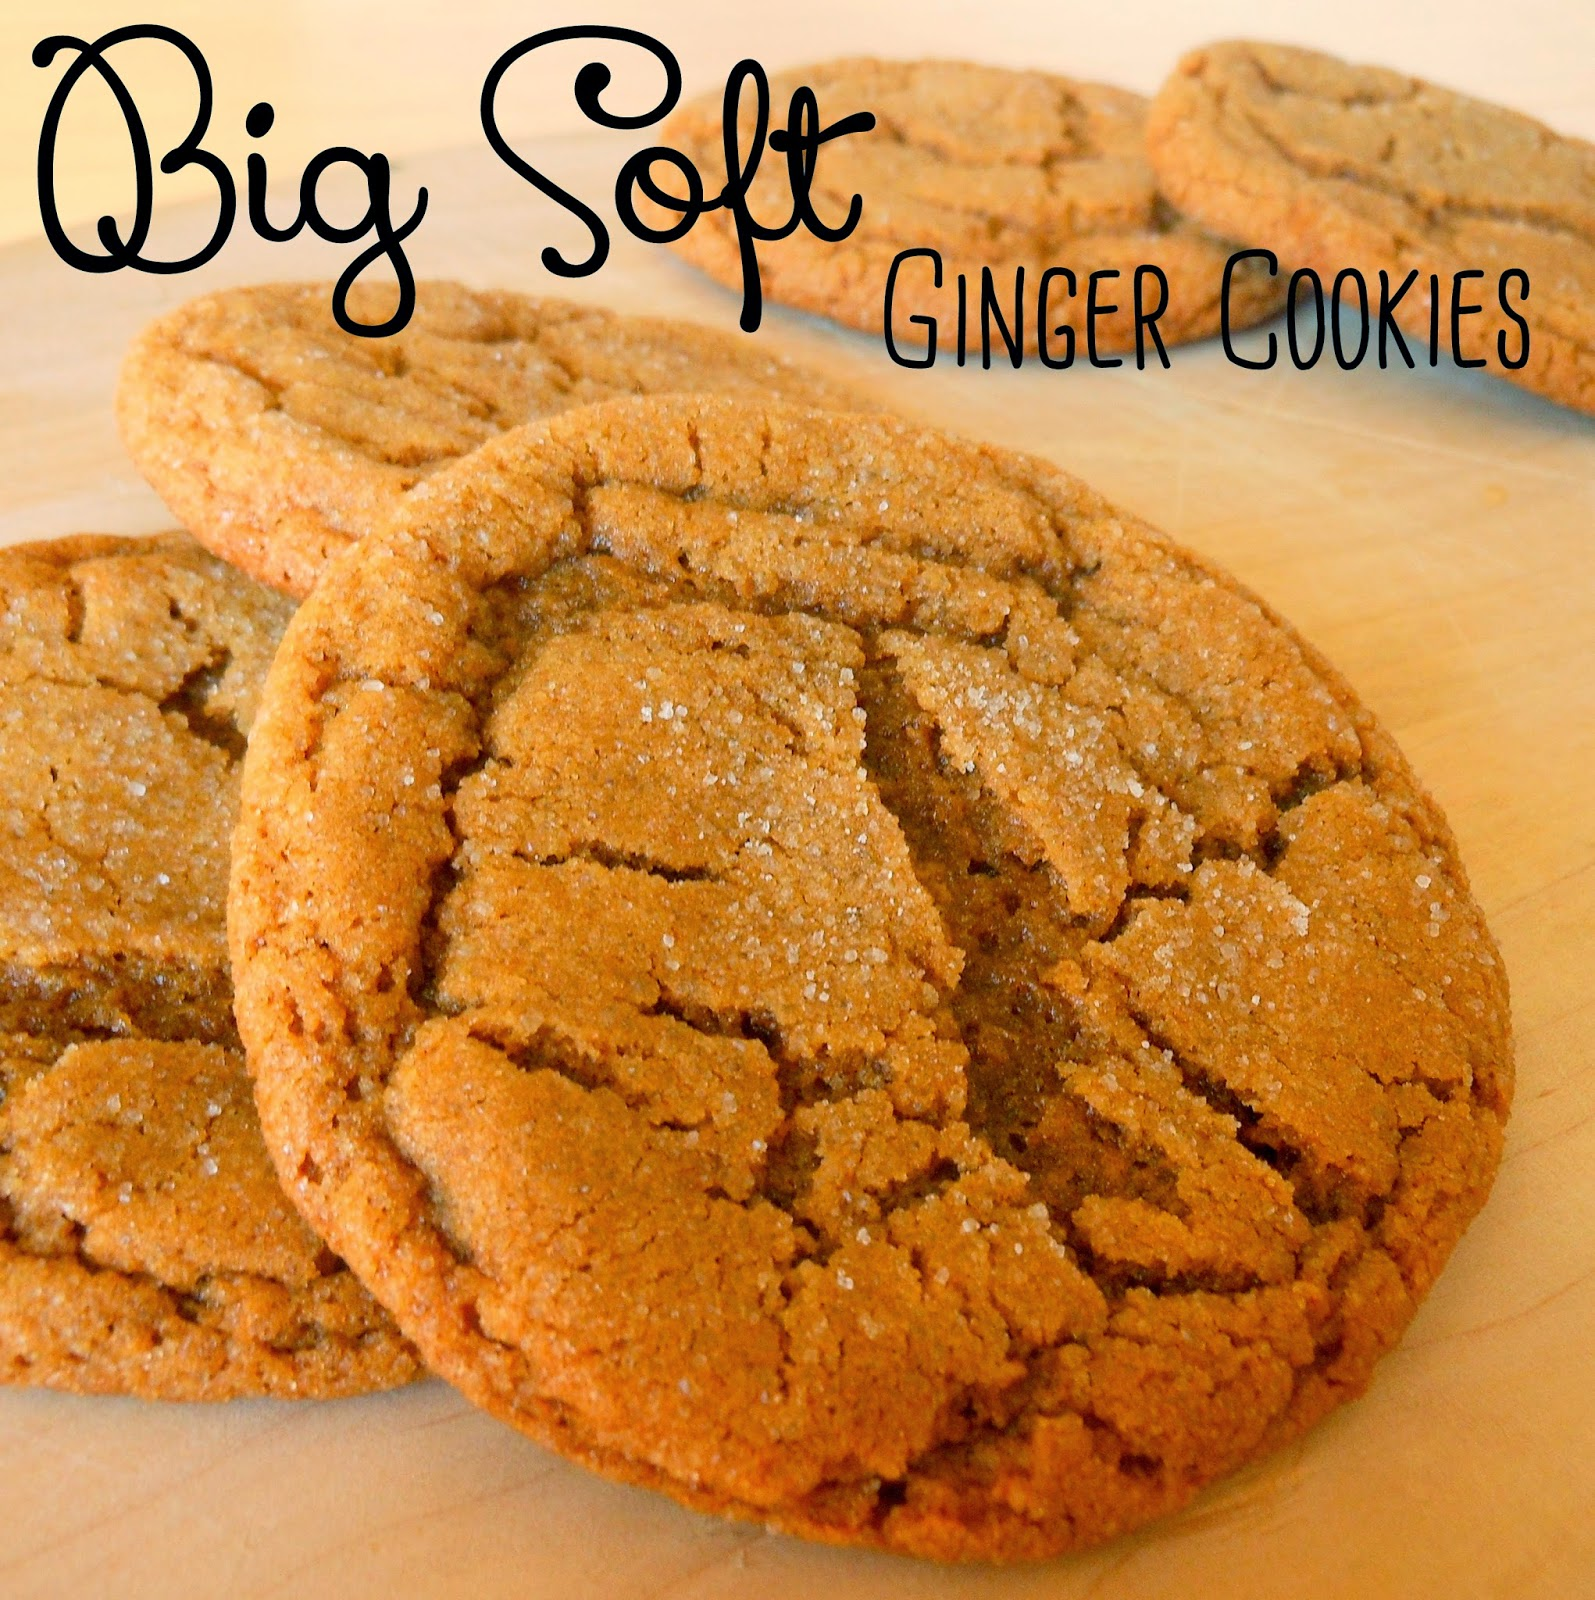 ... Days With My Loves - Adventures in Homemaking: Big Soft Ginger Cookies